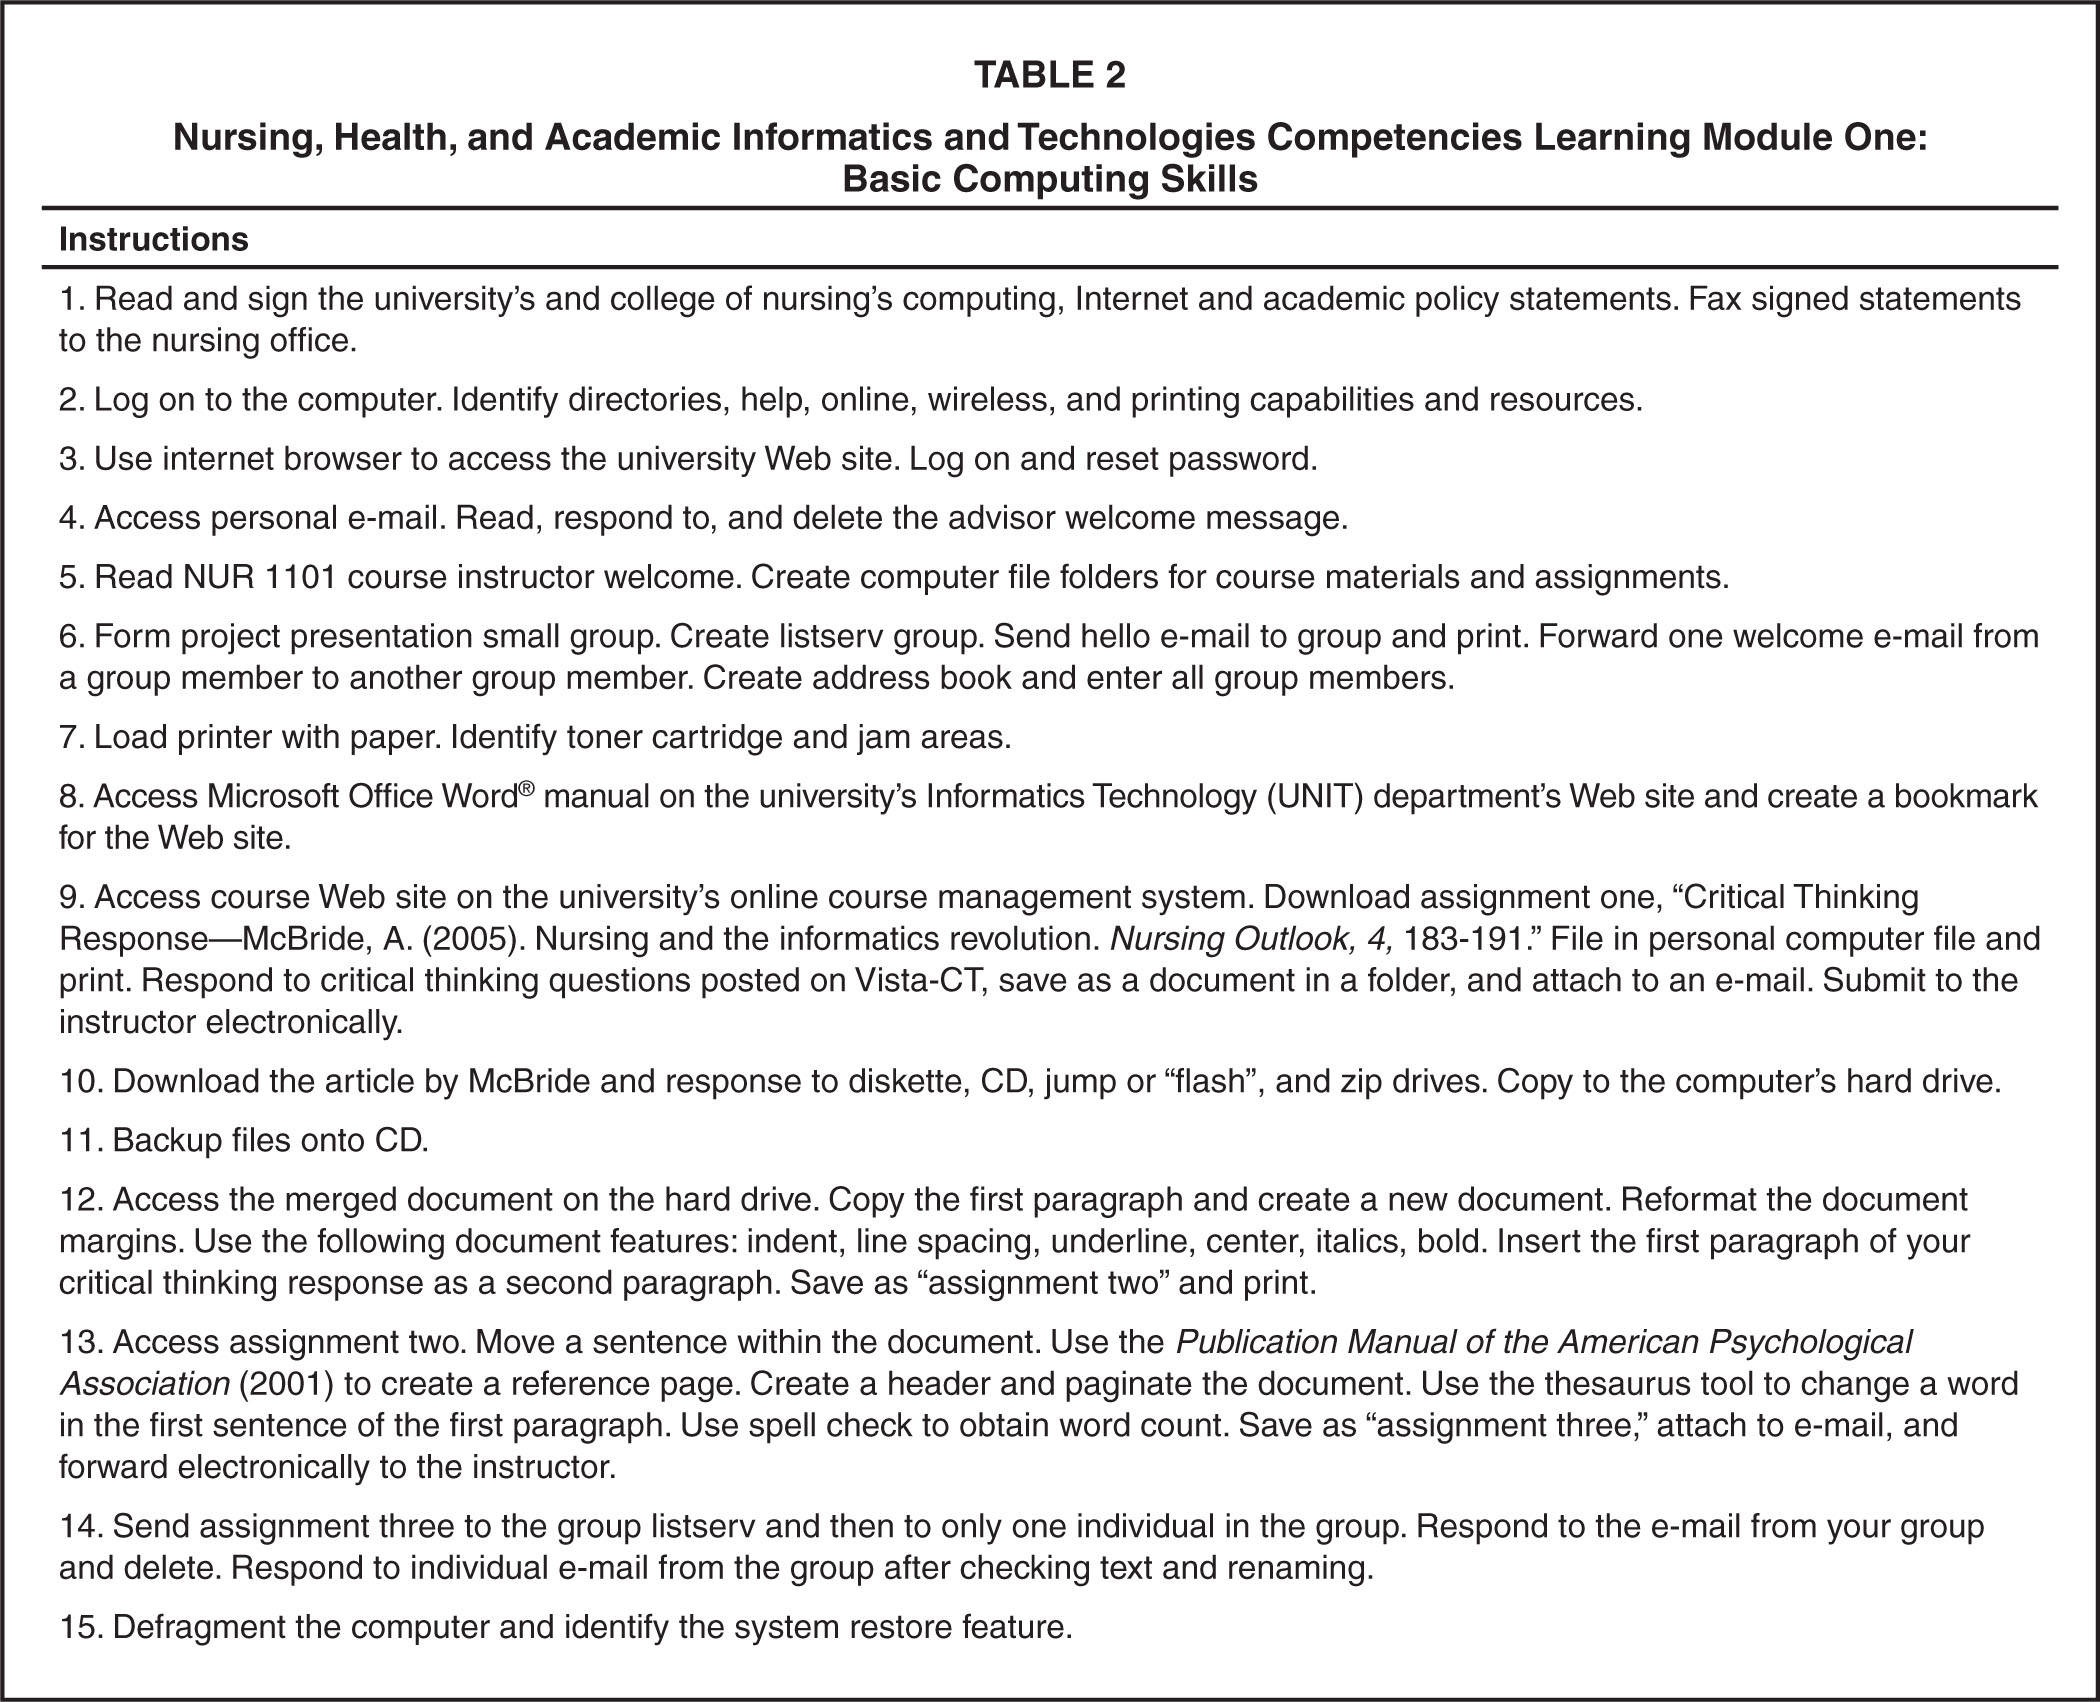 Nursing, Health, and Academic Informatics and Technologies Competencies Learning Module One: Basic Computing Skills